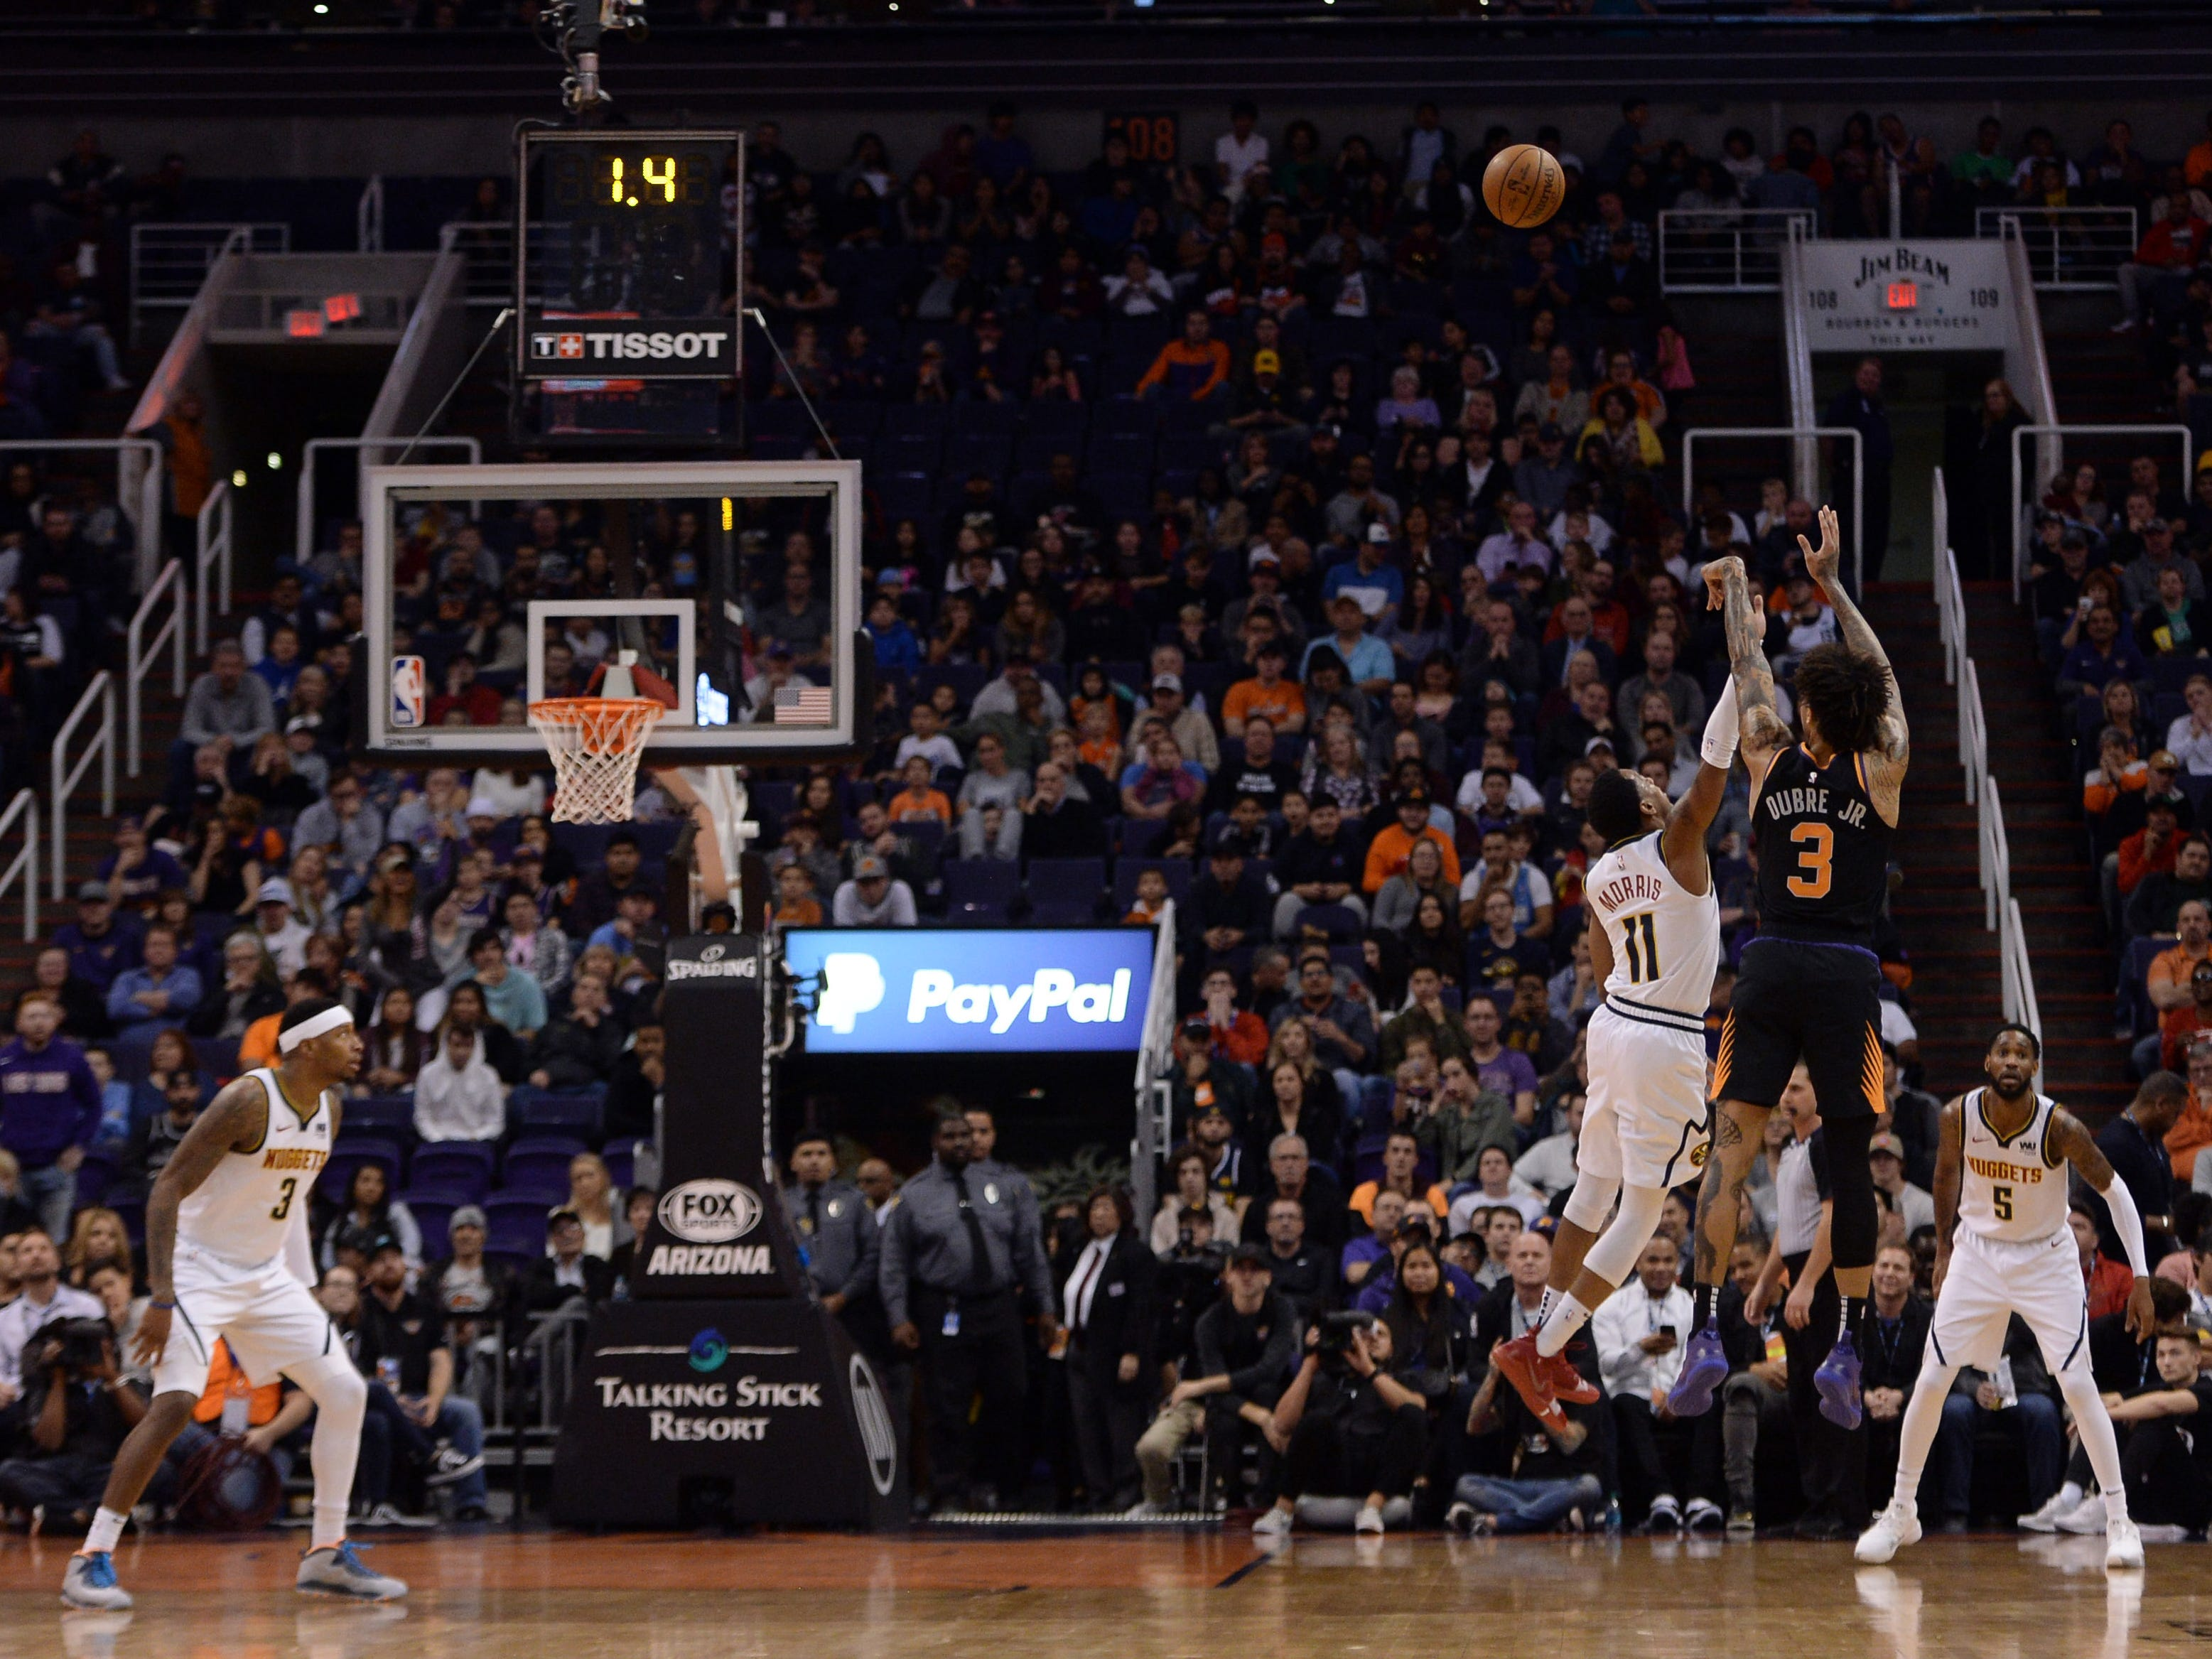 Jan 12, 2019; Phoenix, AZ, USA; Phoenix Suns forward Kelly Oubre Jr. (3) shoots a buzzer beater three point shot against the Denver Nuggets during the second half. (Joe Camporeale-USA TODAY Sports)